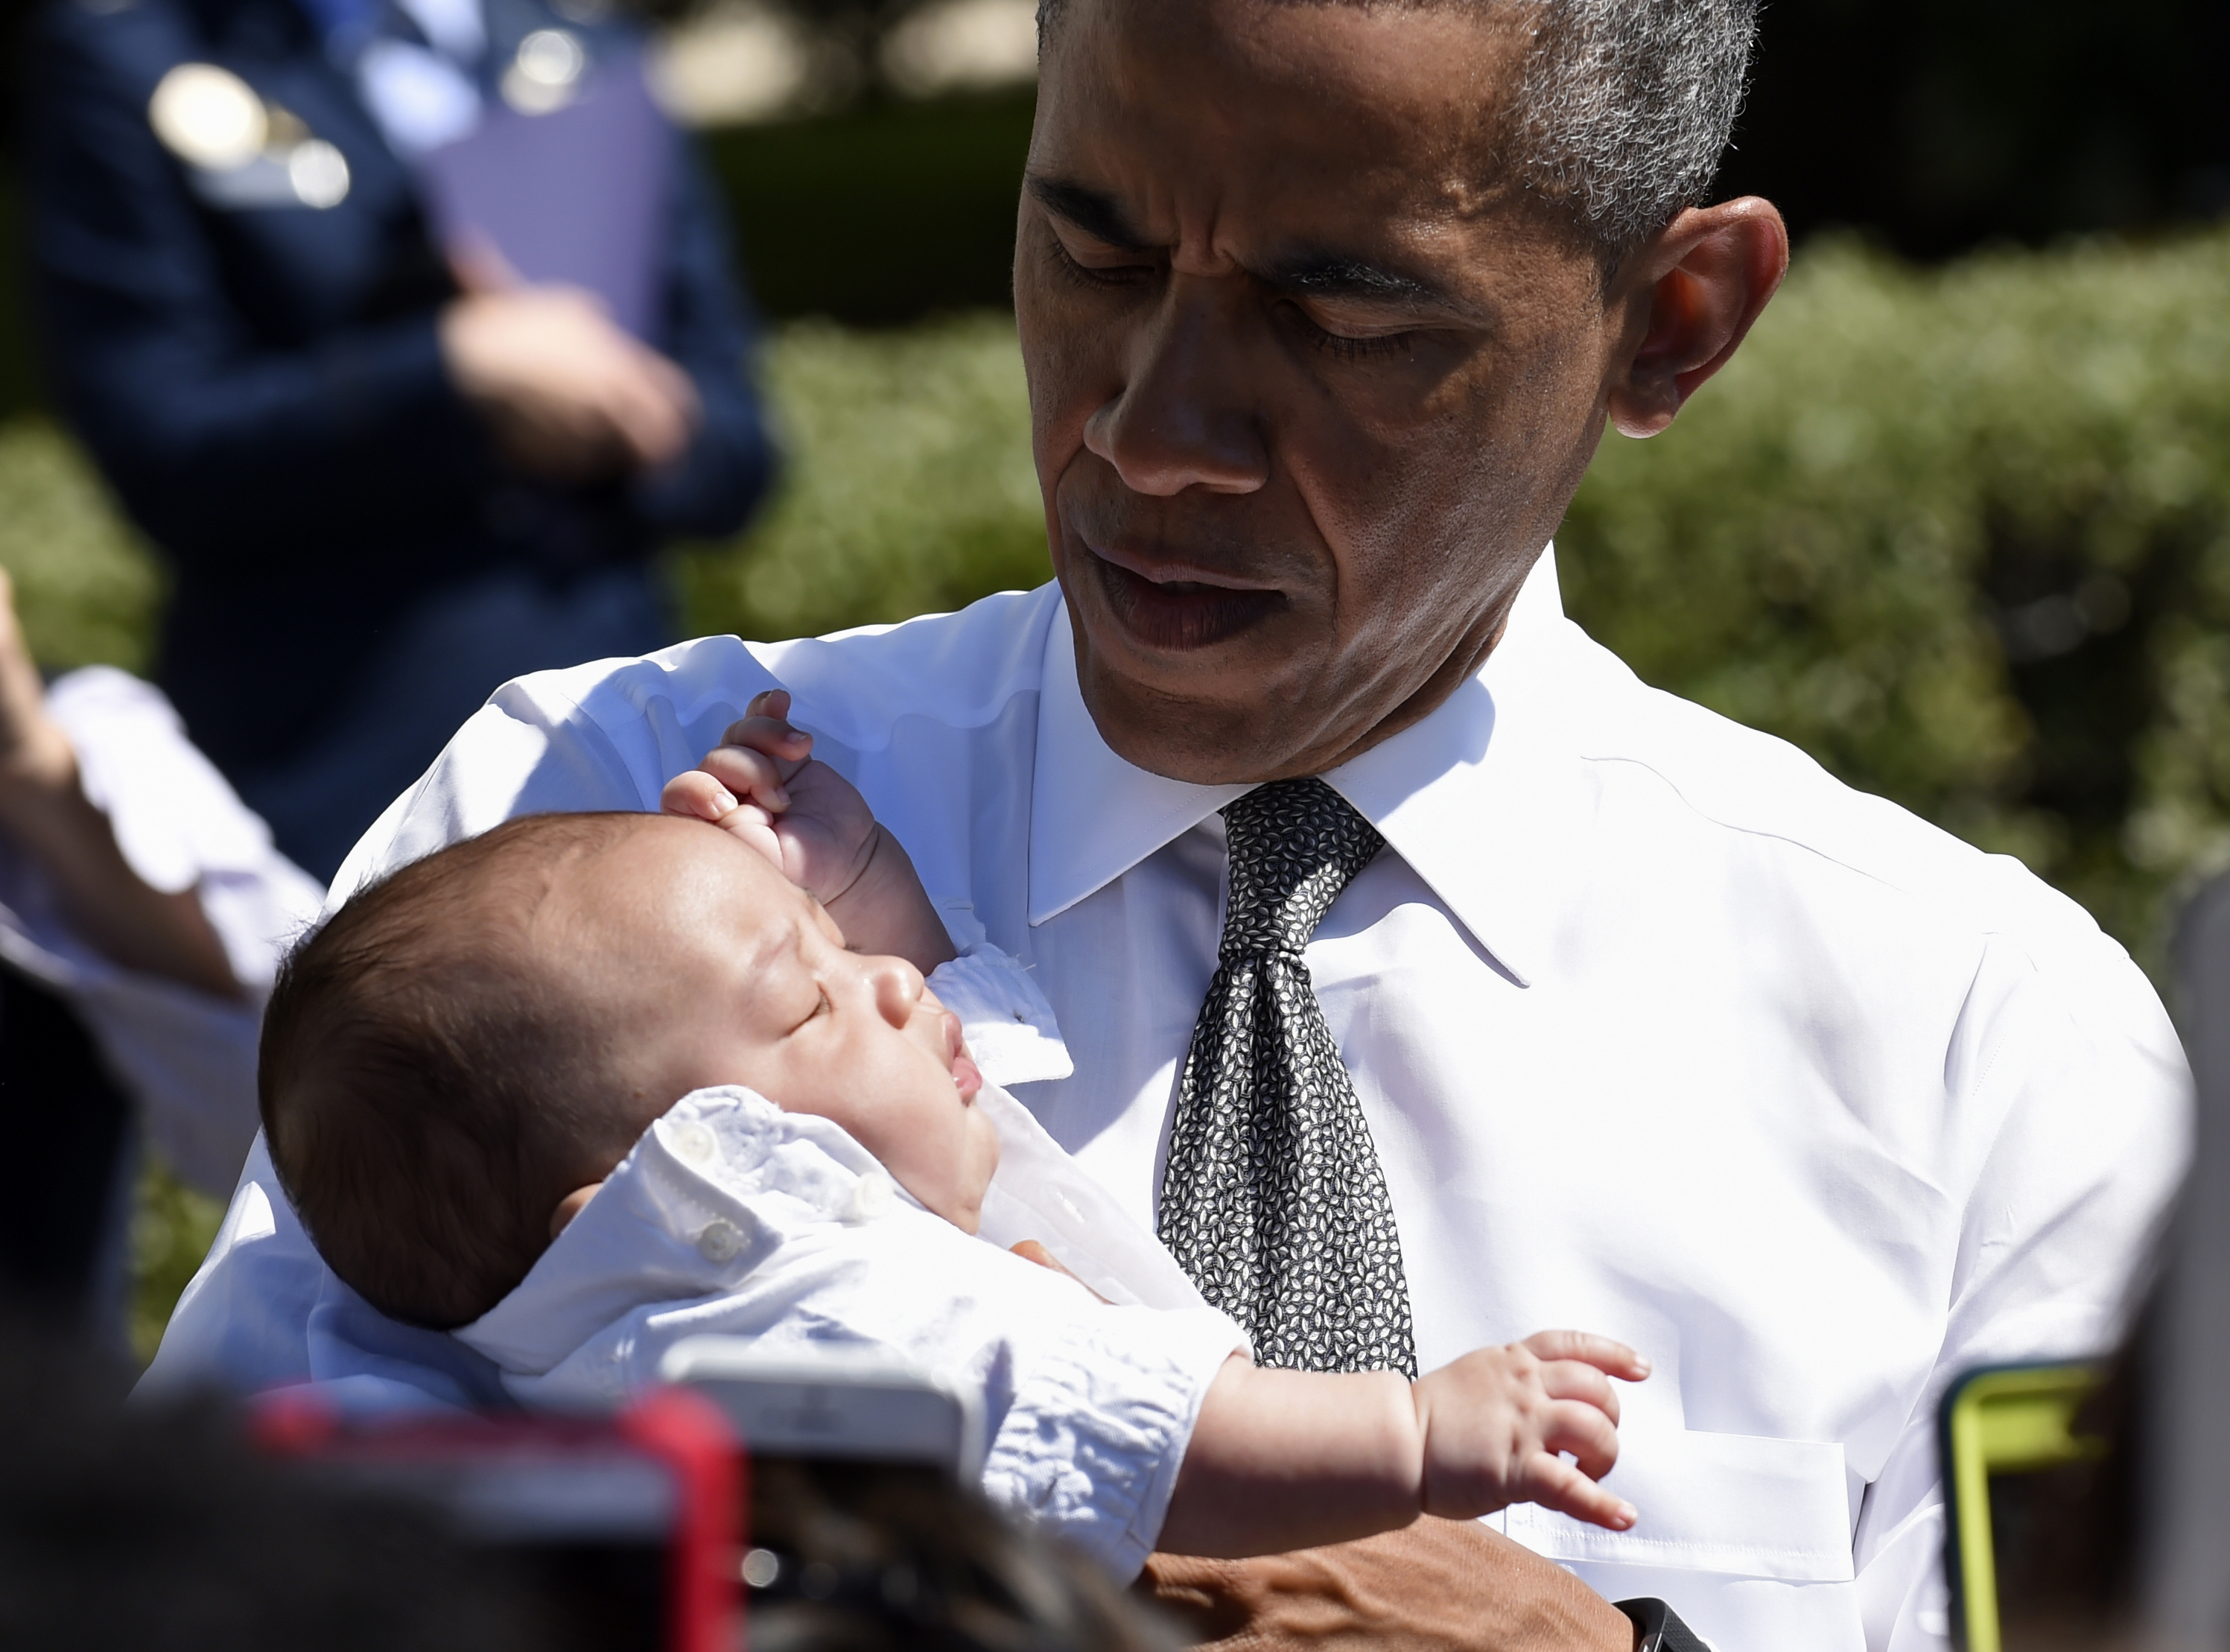 President Barack Obama holds a baby as he greets guests attending an event at the White House in Washington on April 16, 2015.